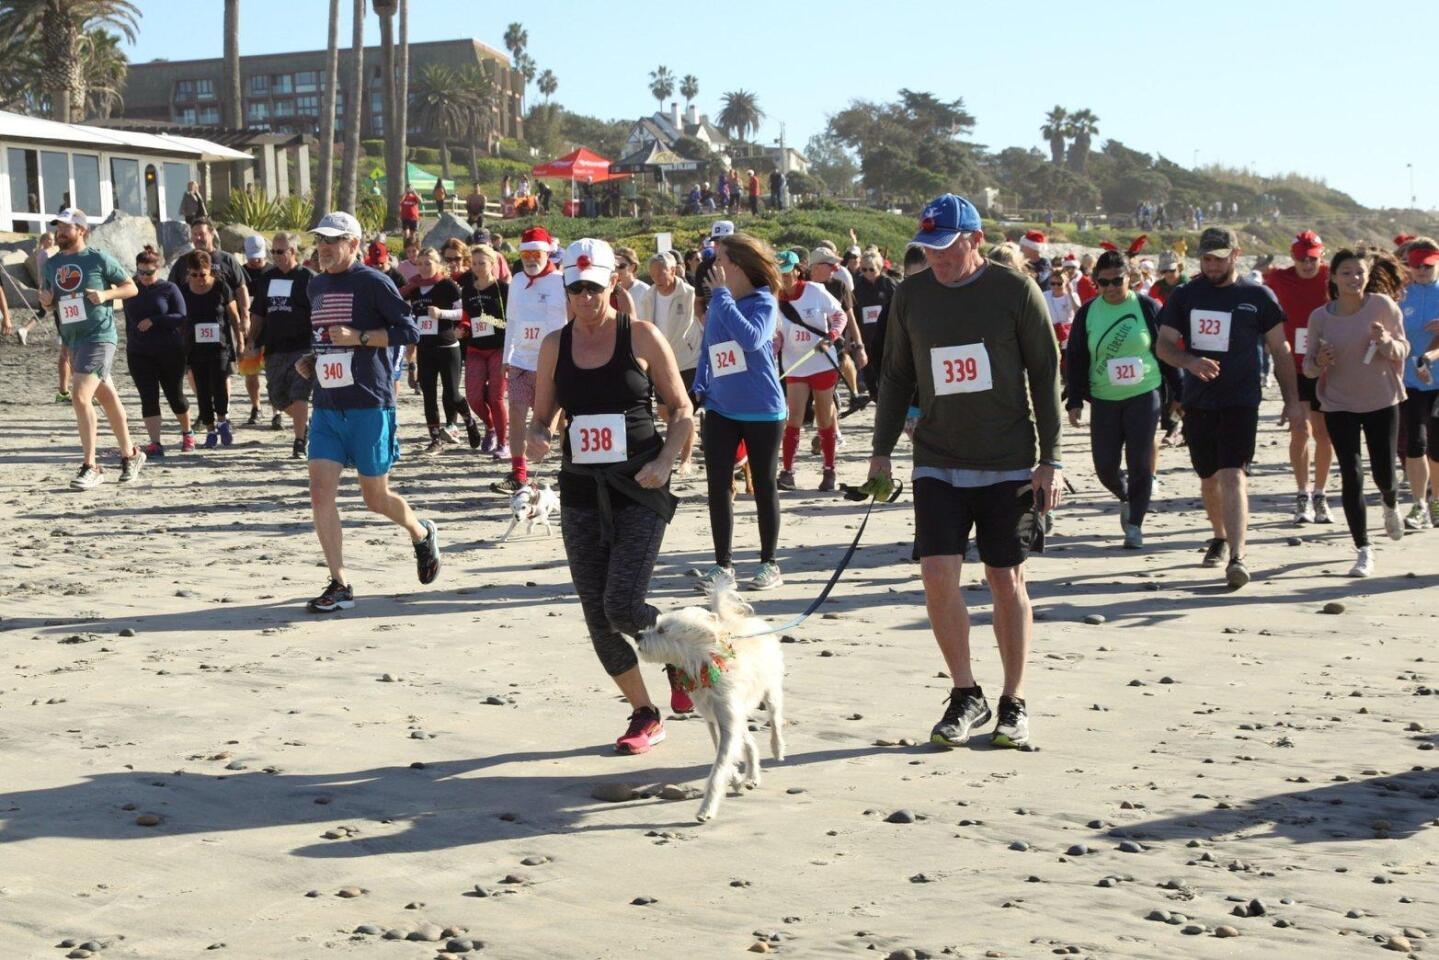 The Annual Red Nose Run at Del Mar Beach